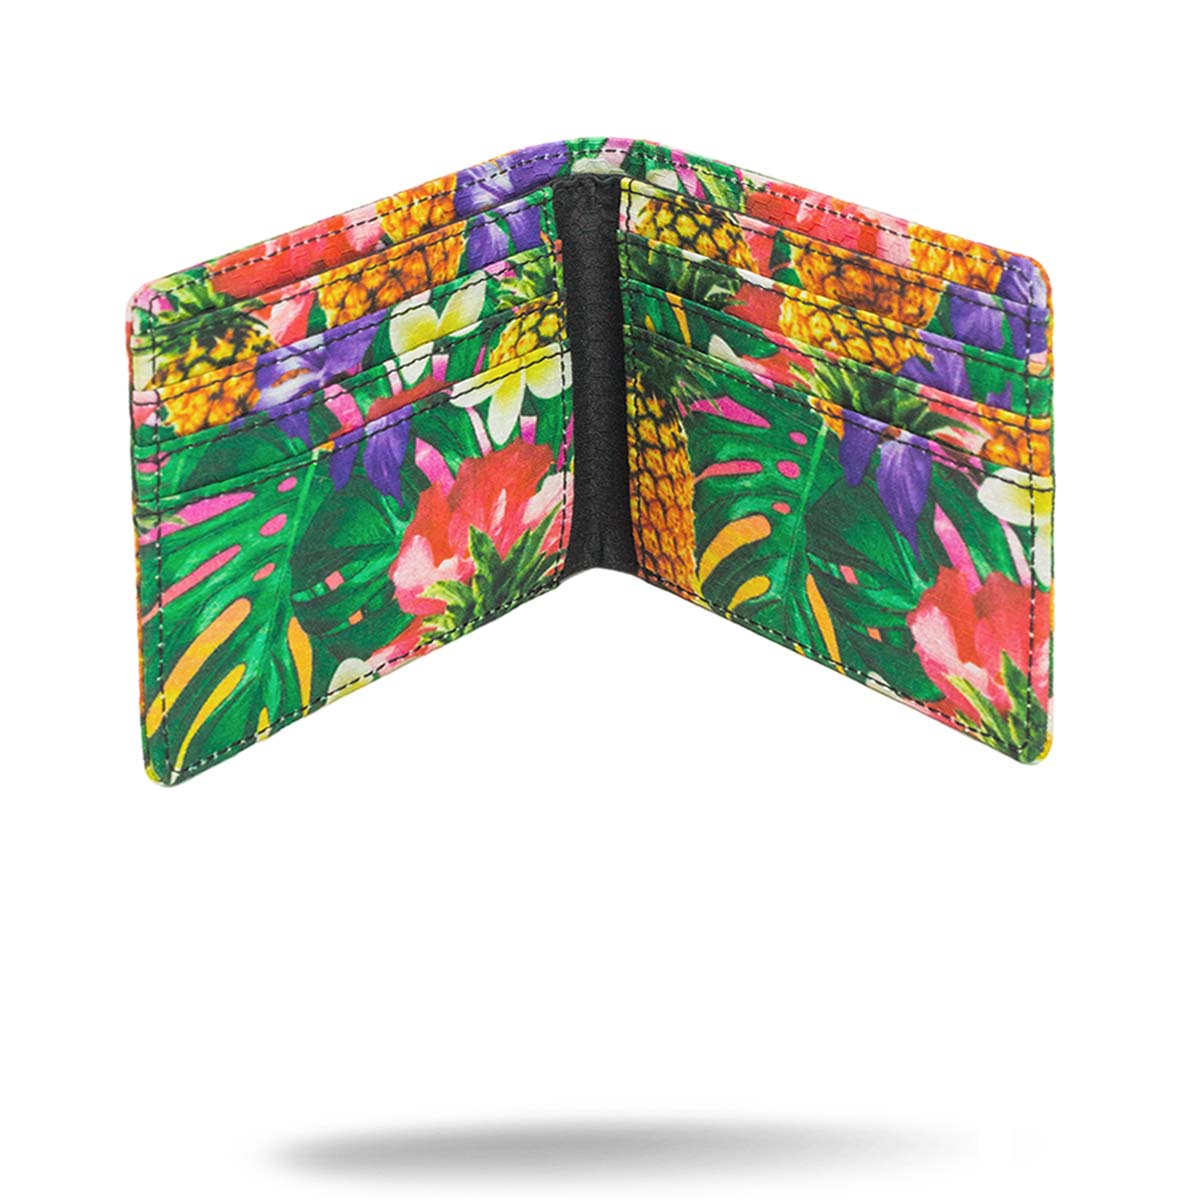 Inside view of Hawaiian printed folding wallet